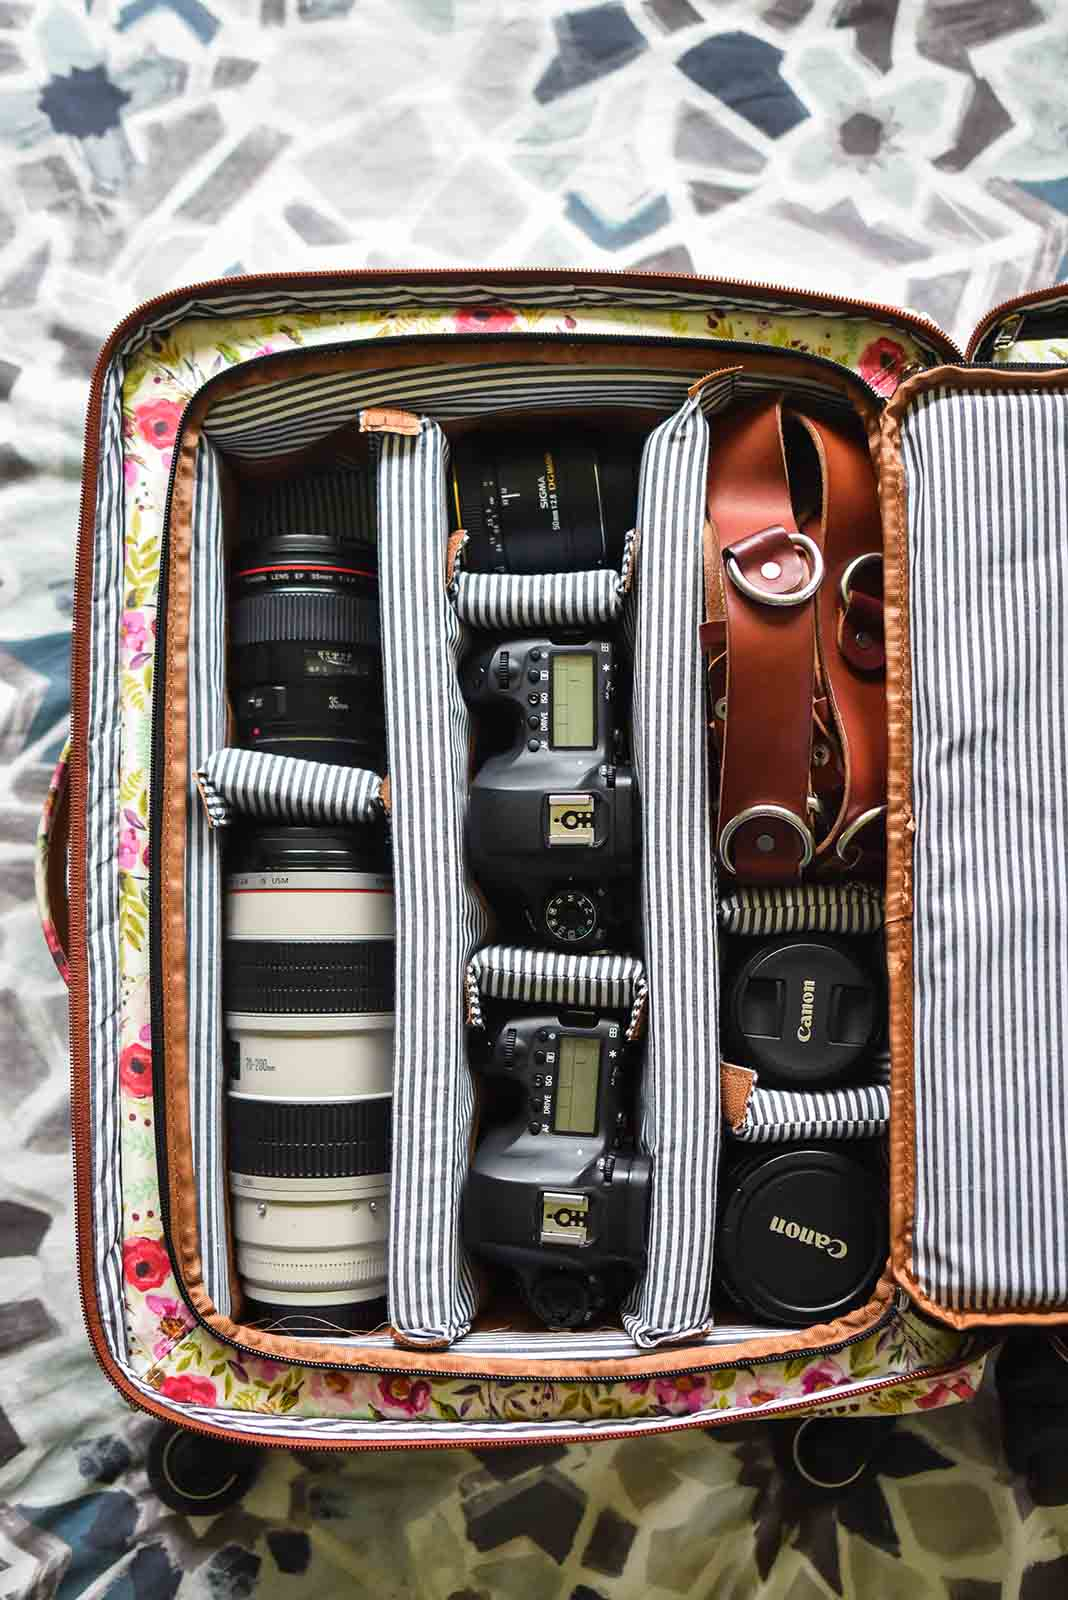 Traveling with photography gear can be easy with the right tips.